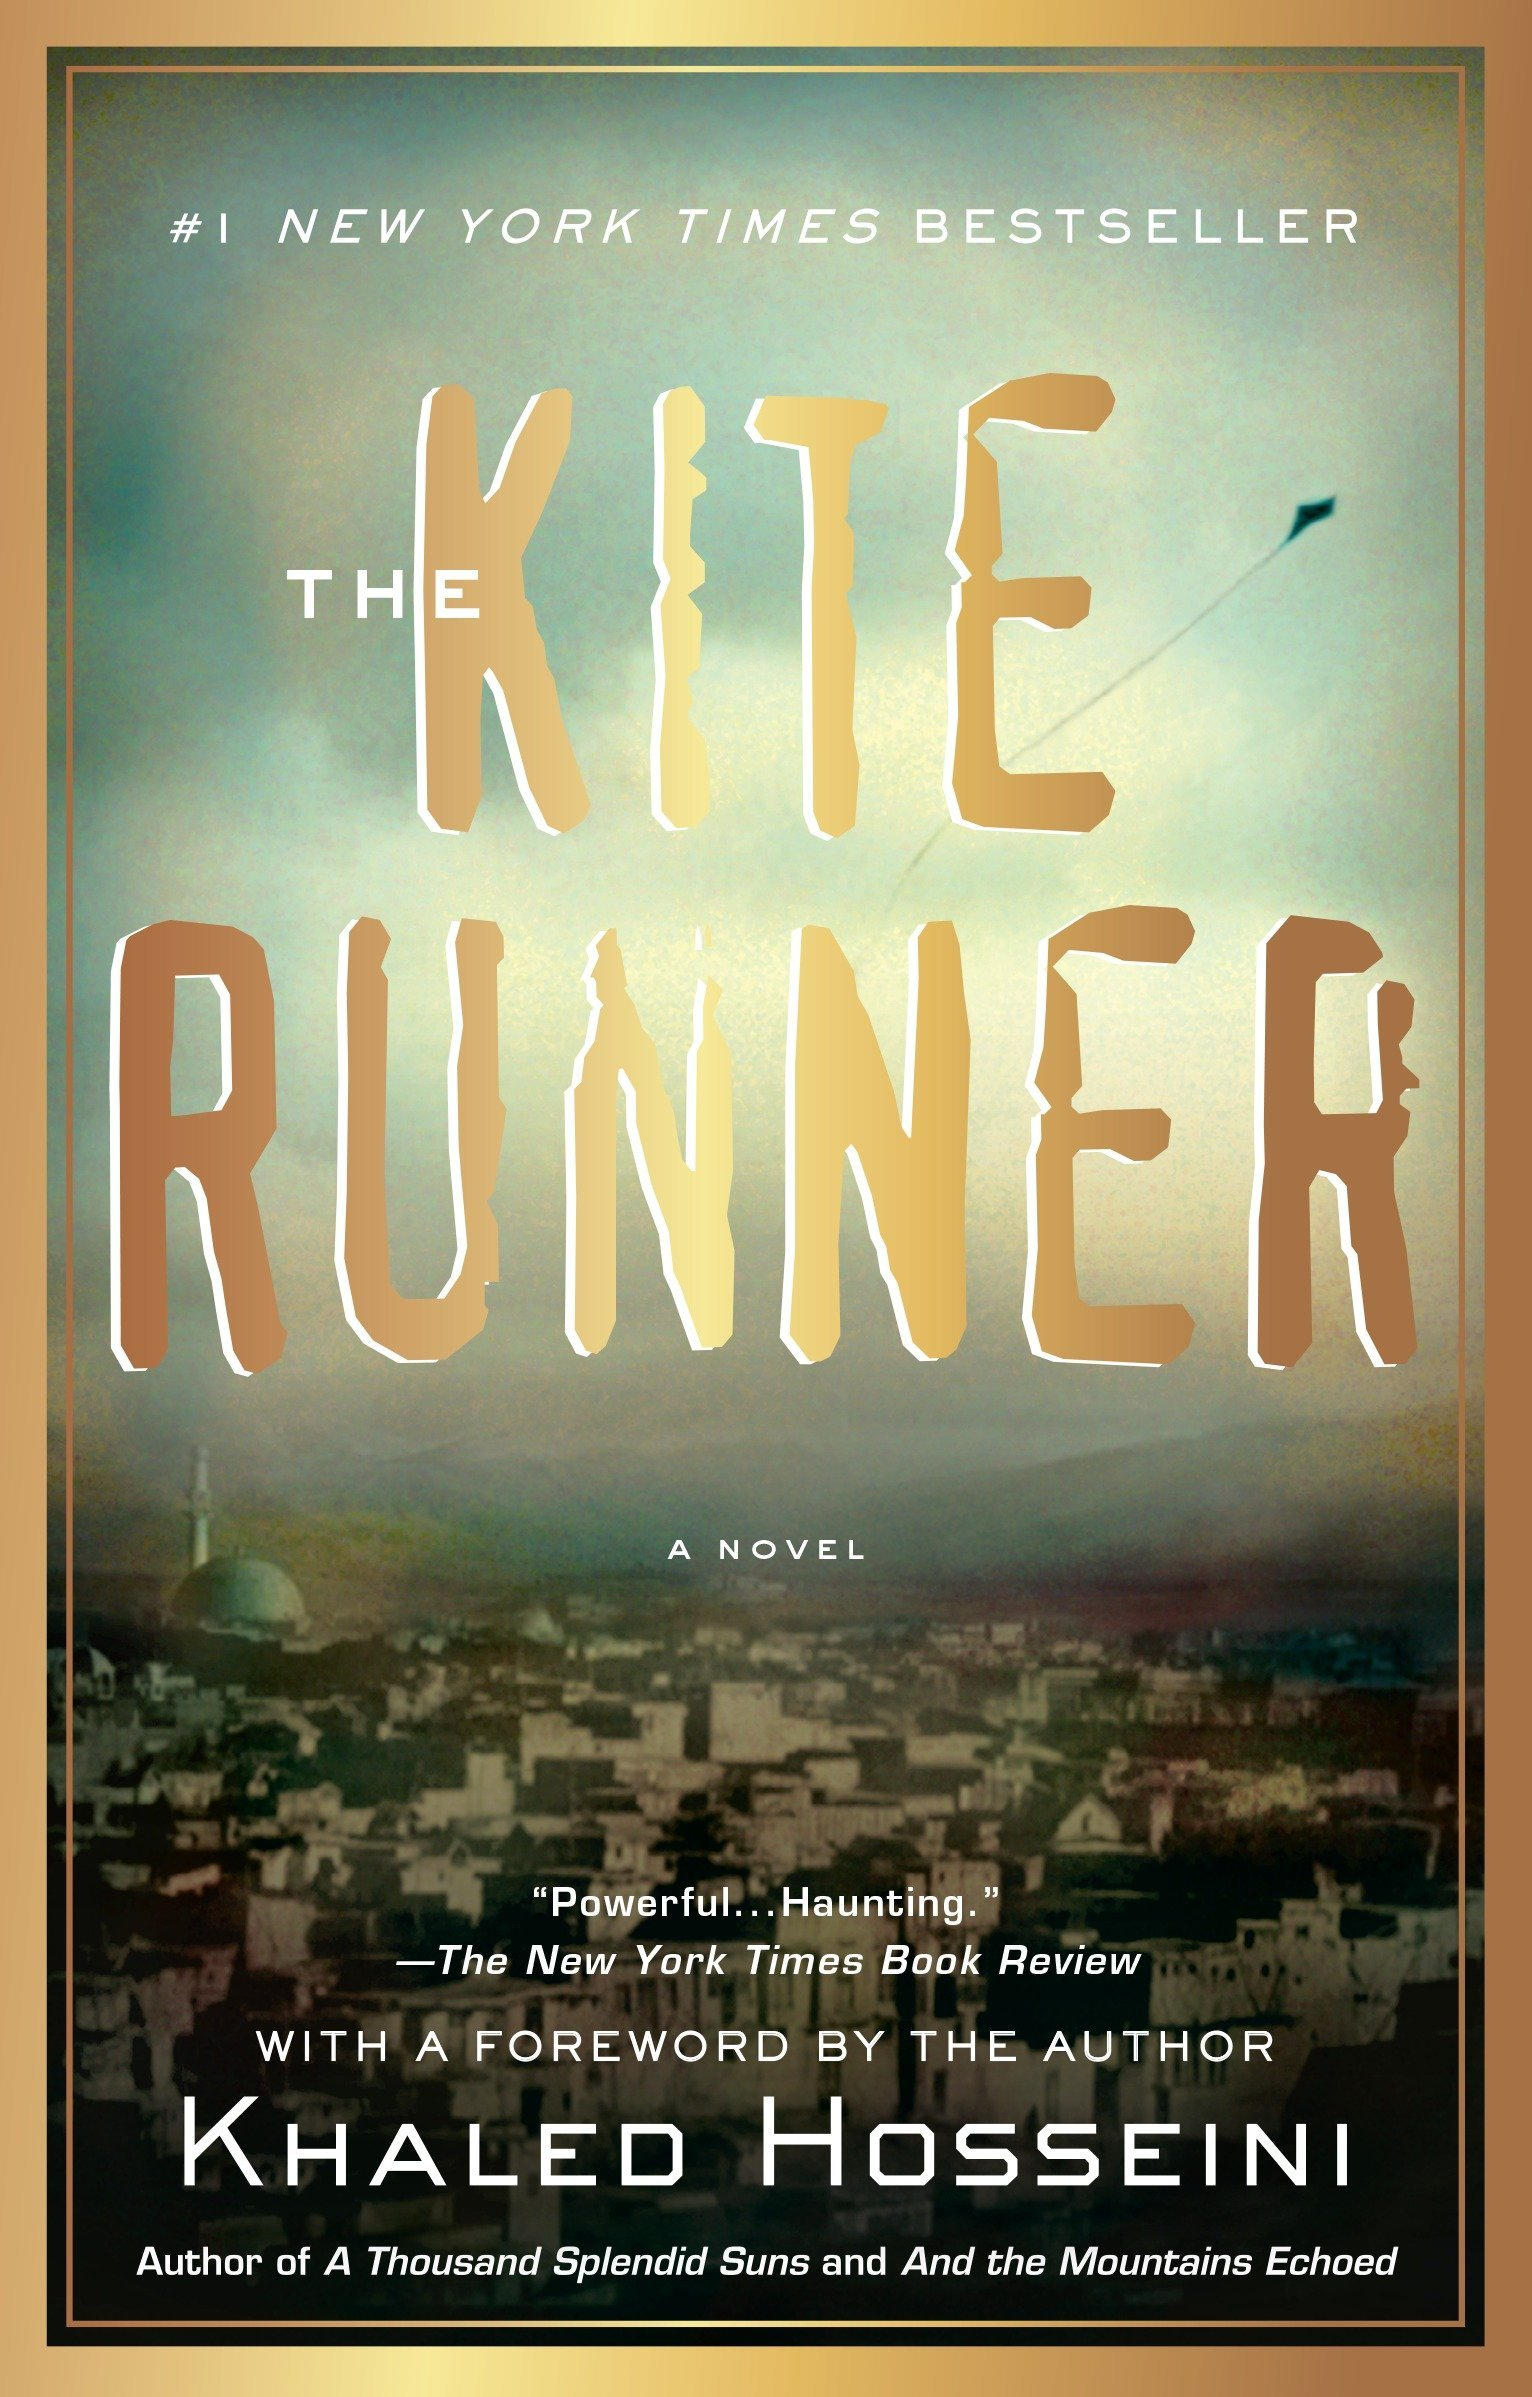 the kite runner movie online free